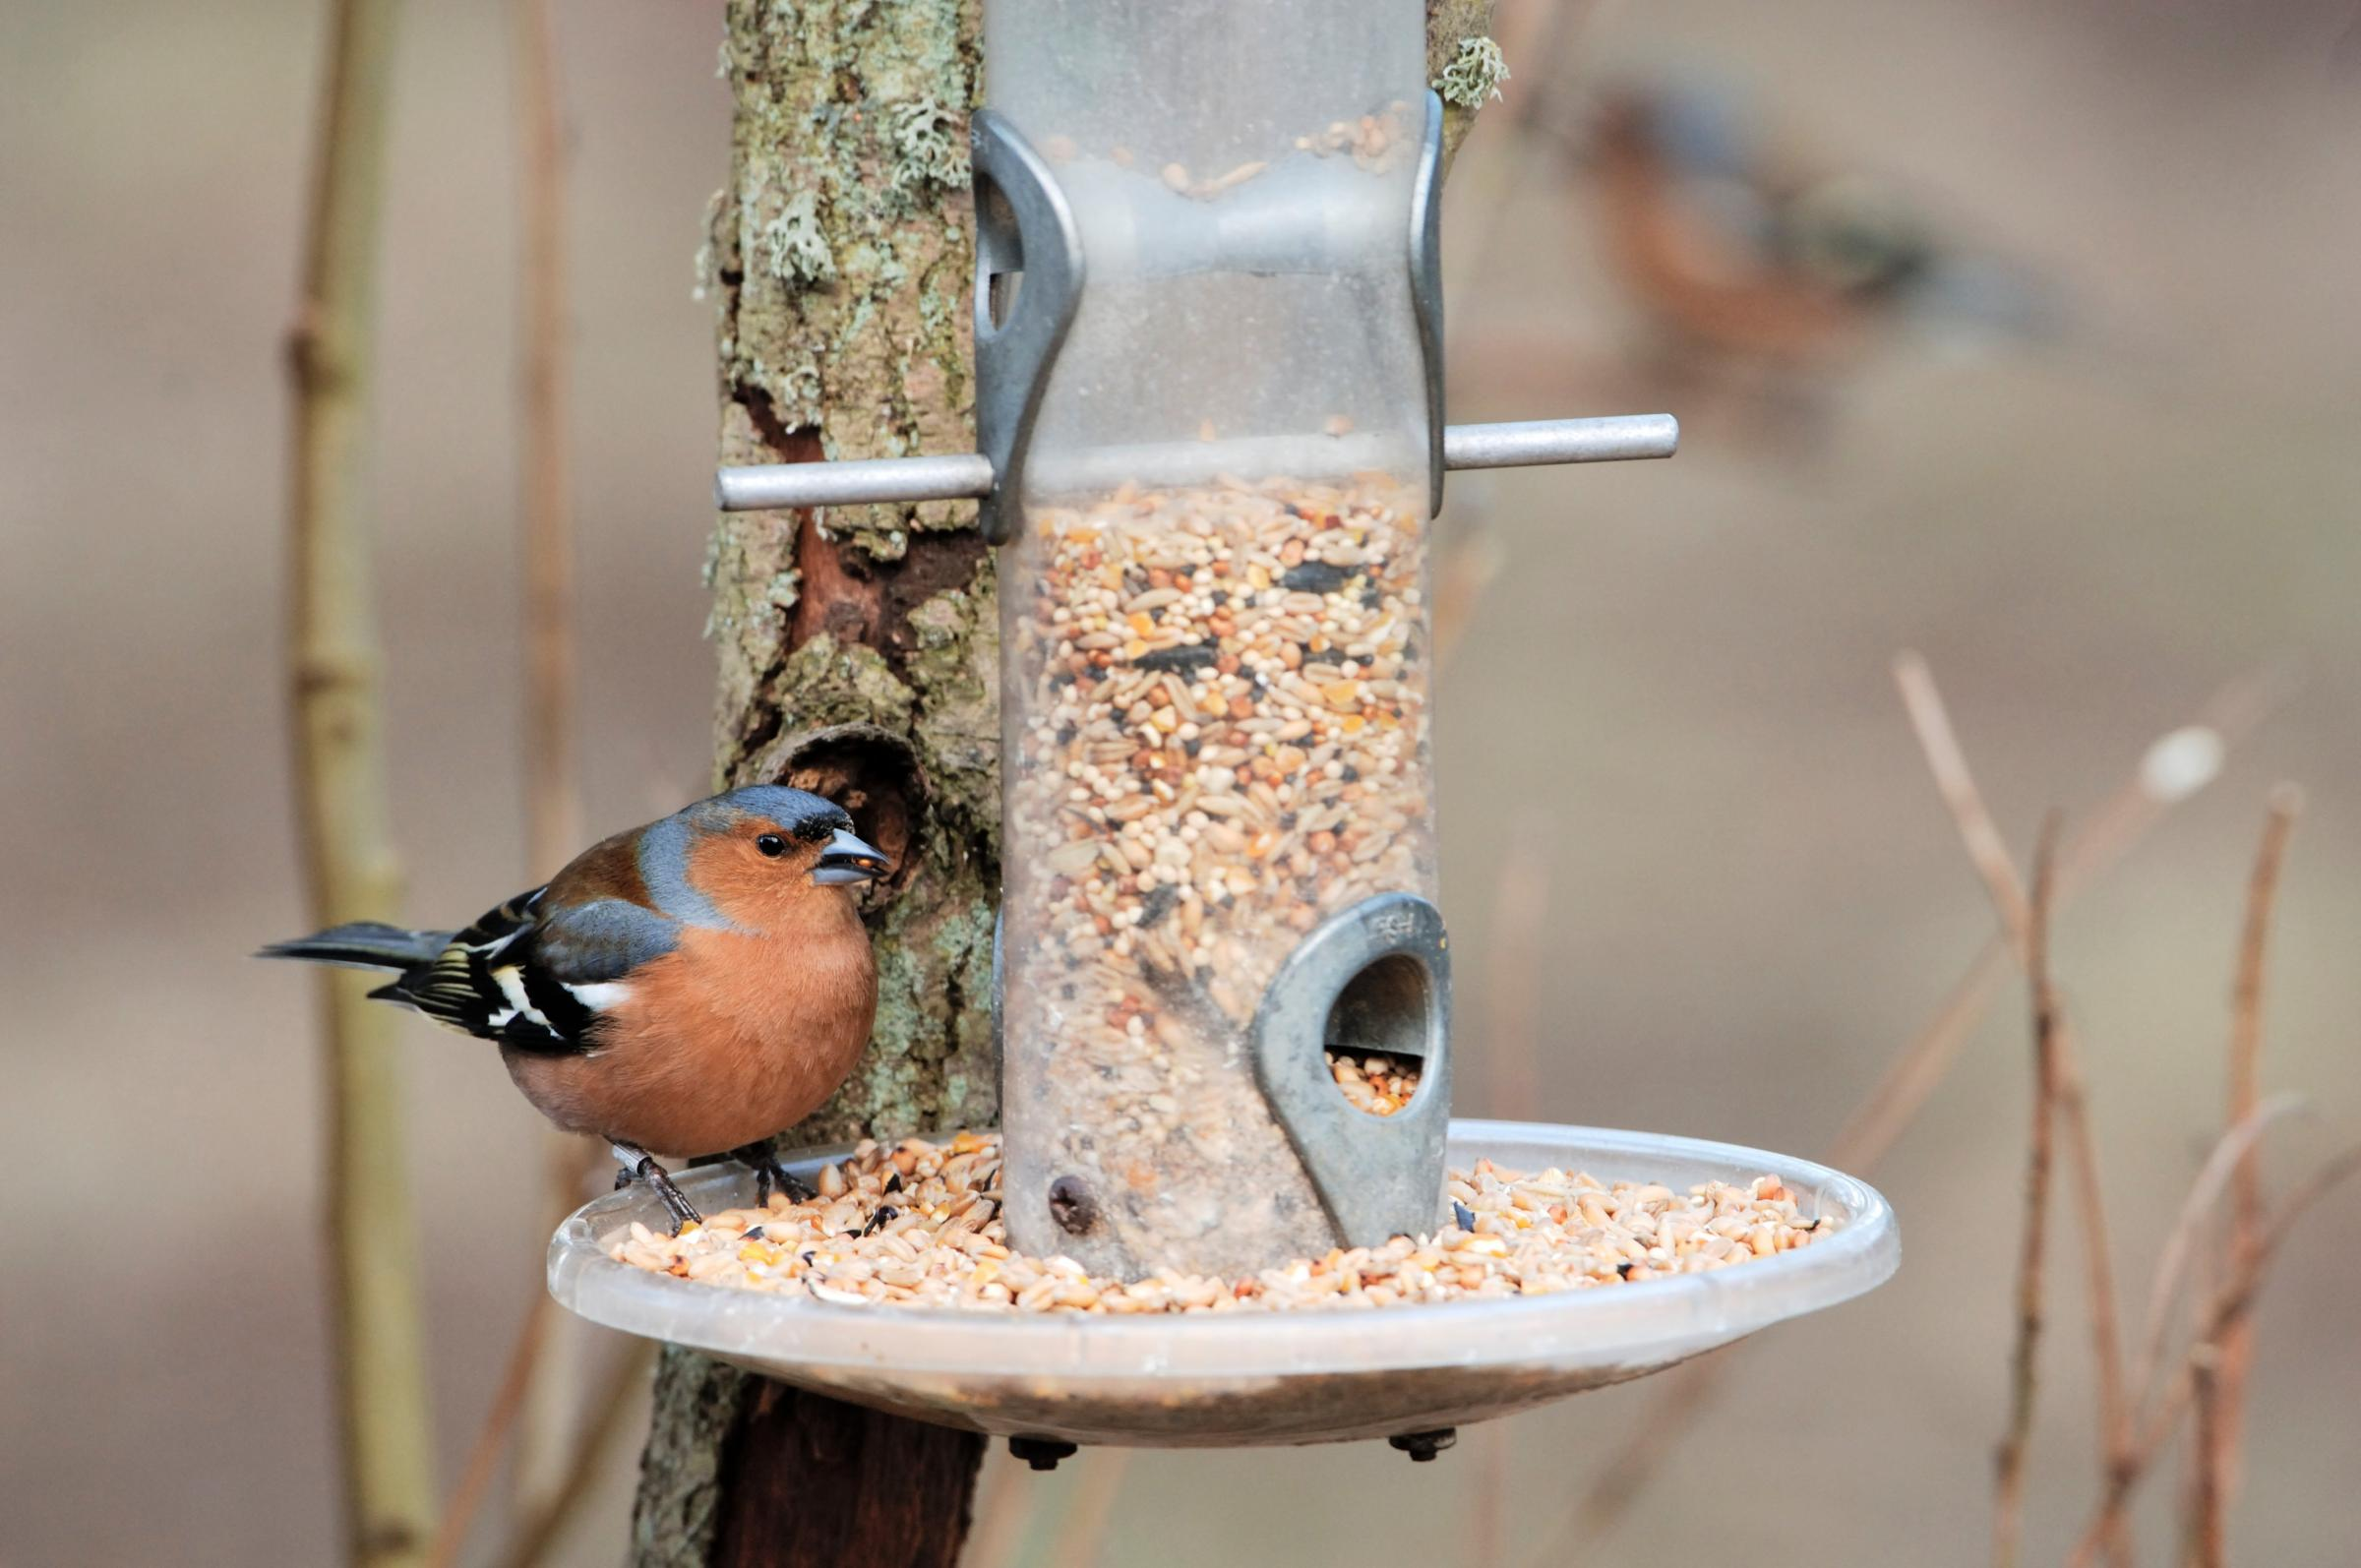 A male Chaffinch enjoys eating at a bird feeder.